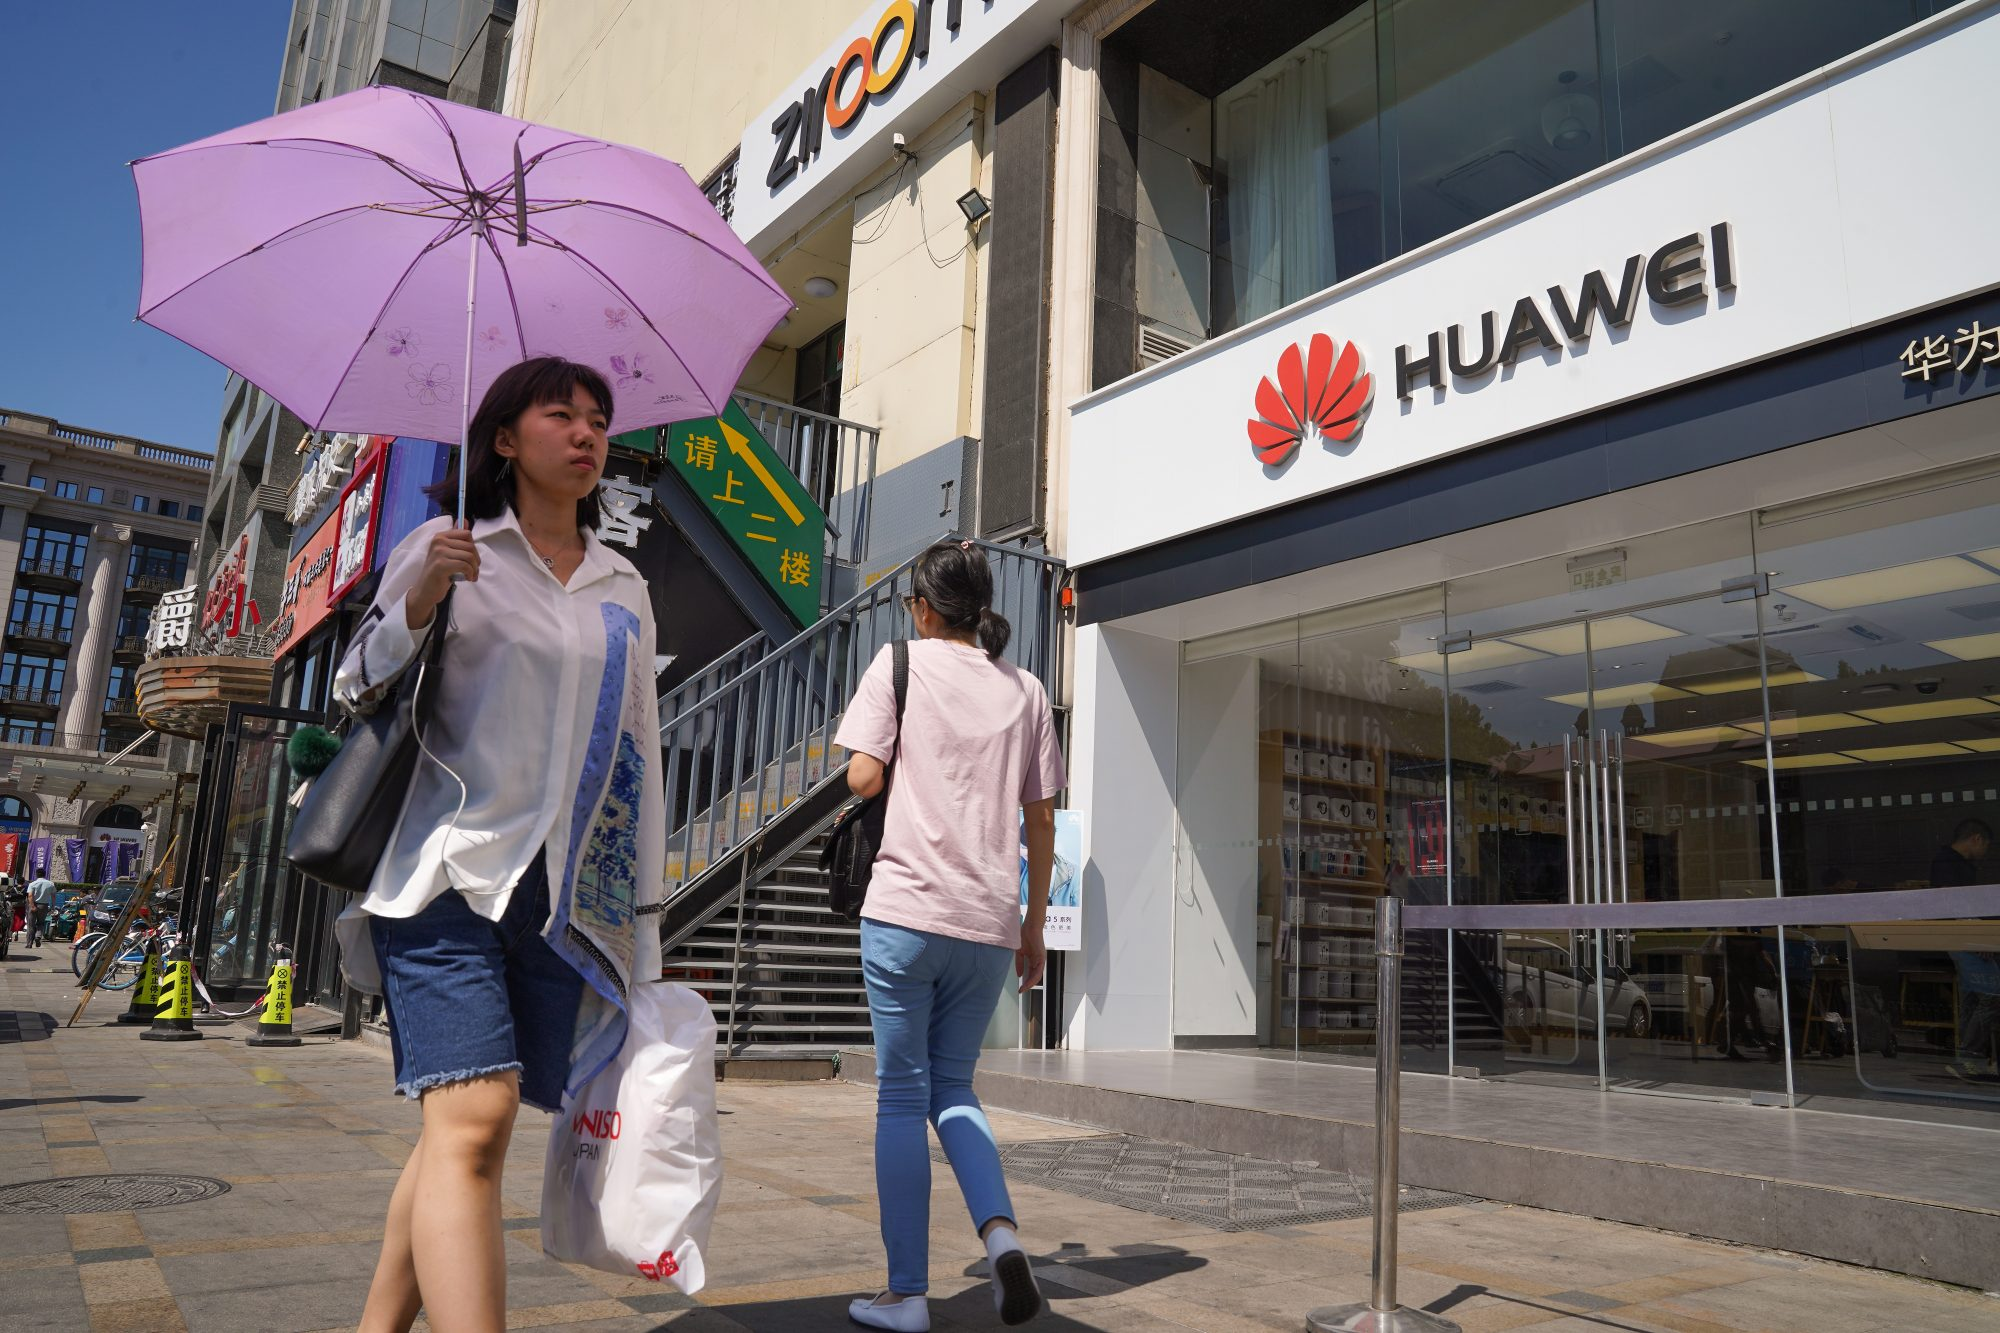 President Trump backed off a ban on American companies selling to China's Huawei.